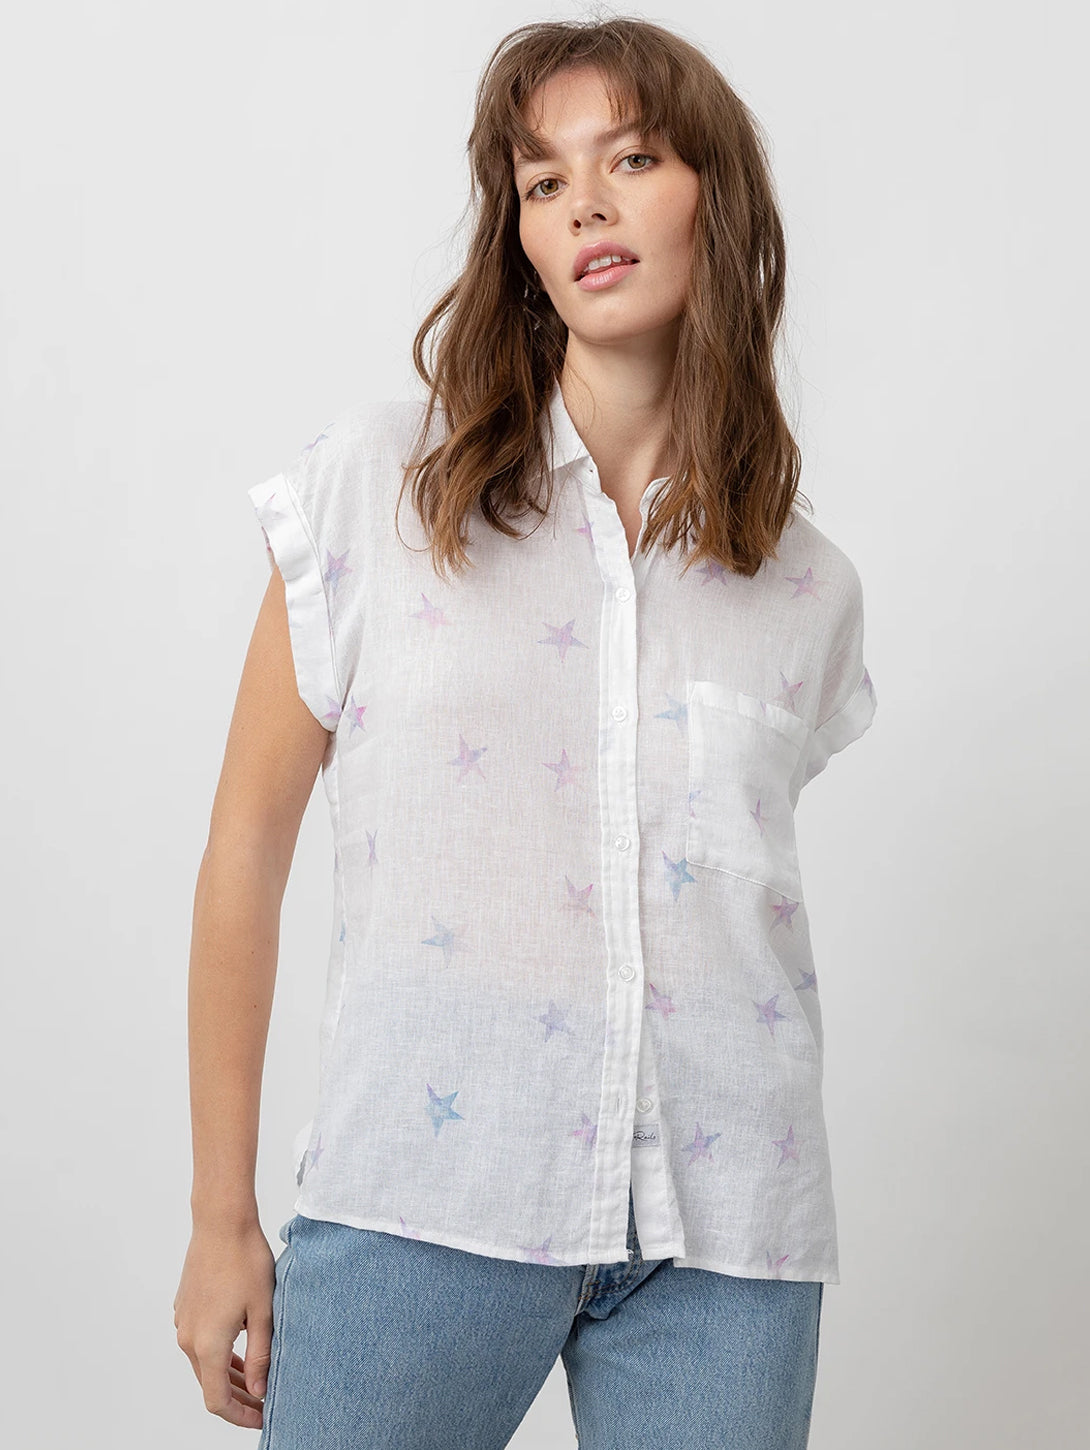 Whitney Short Sleeve Button Down Shirt - Tie Dye Stars-Rails-Over the Rainbow